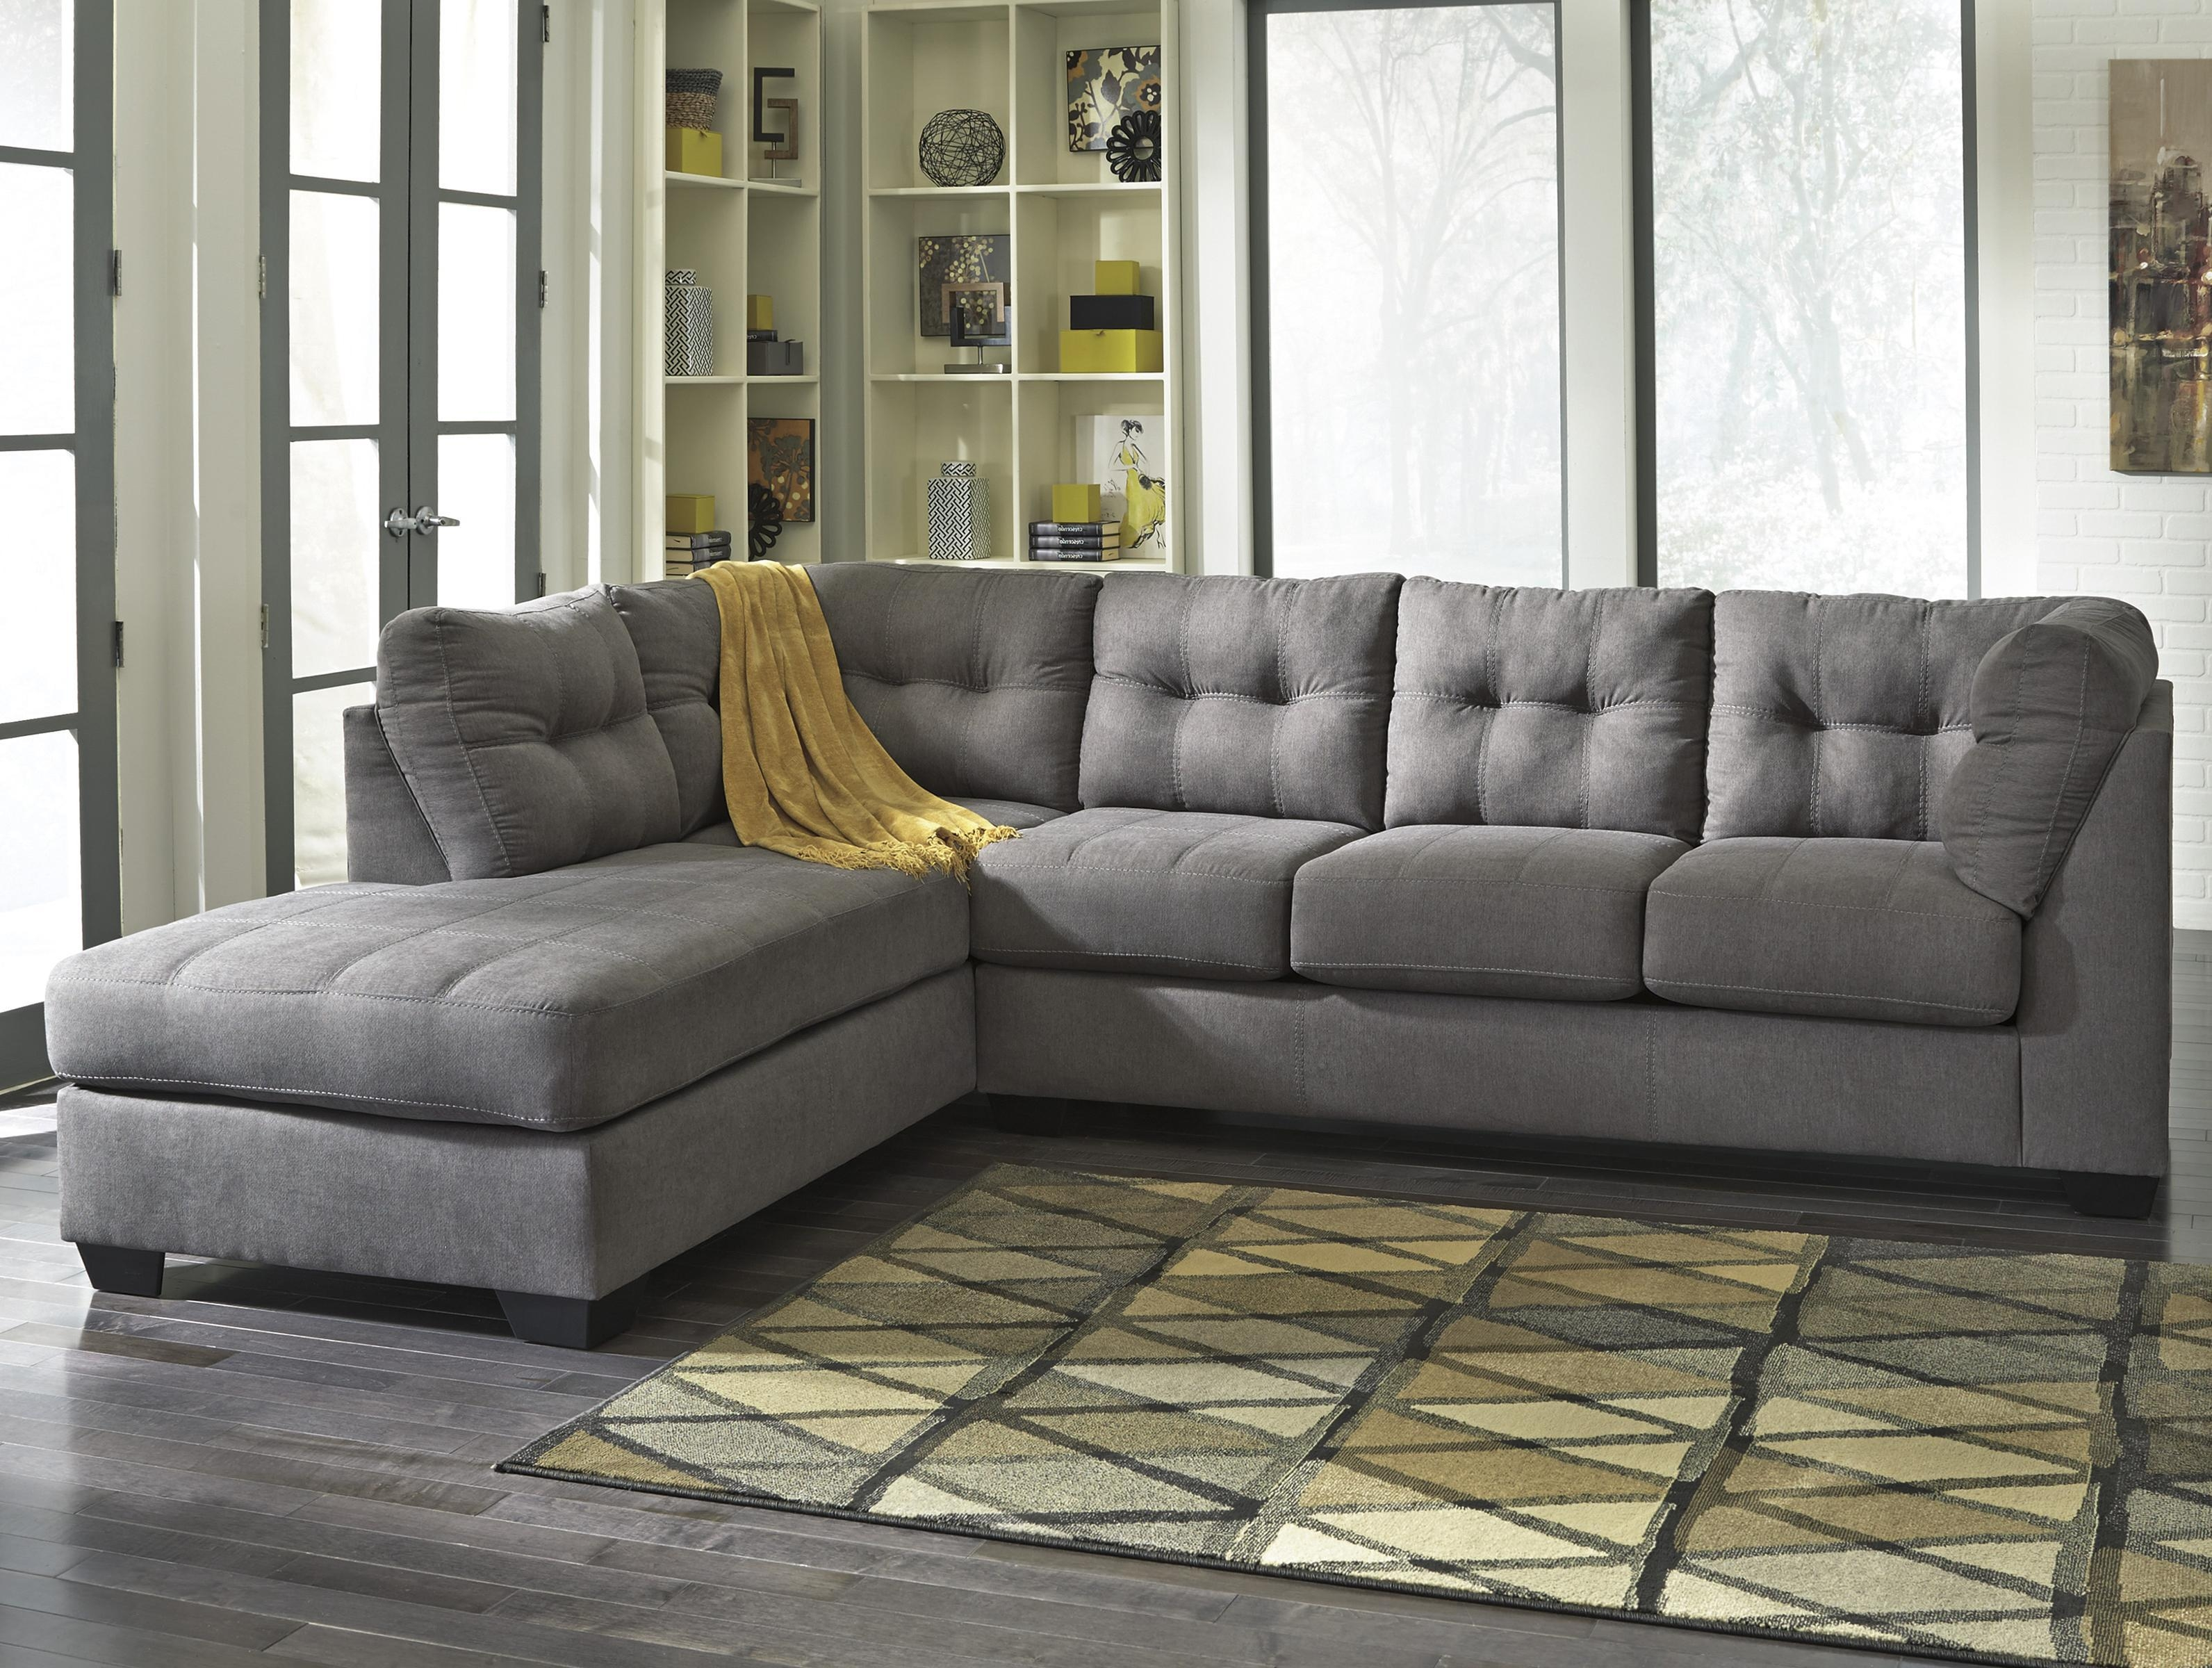 Benchcraft Maier – Charcoal 2 Piece Sectional W/ Sleeper Sofa Regarding 3 Piece Sectional Sleeper Sofa (Image 6 of 15)